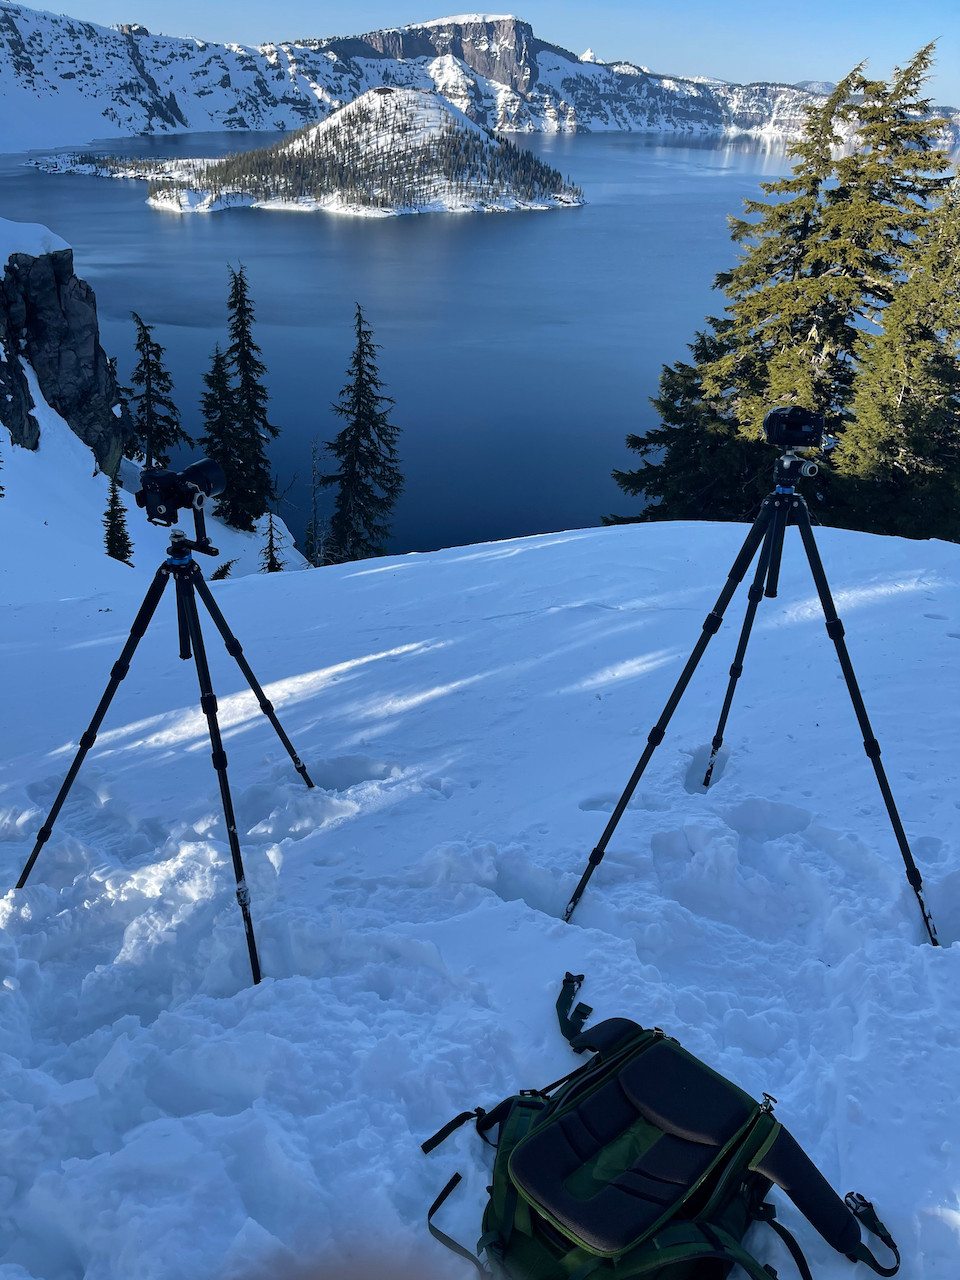 Snow covers Wizard Island and the shore of Crater Lake in Oregon. Two cameras are mounted on tripods on the shore to capture the majesty